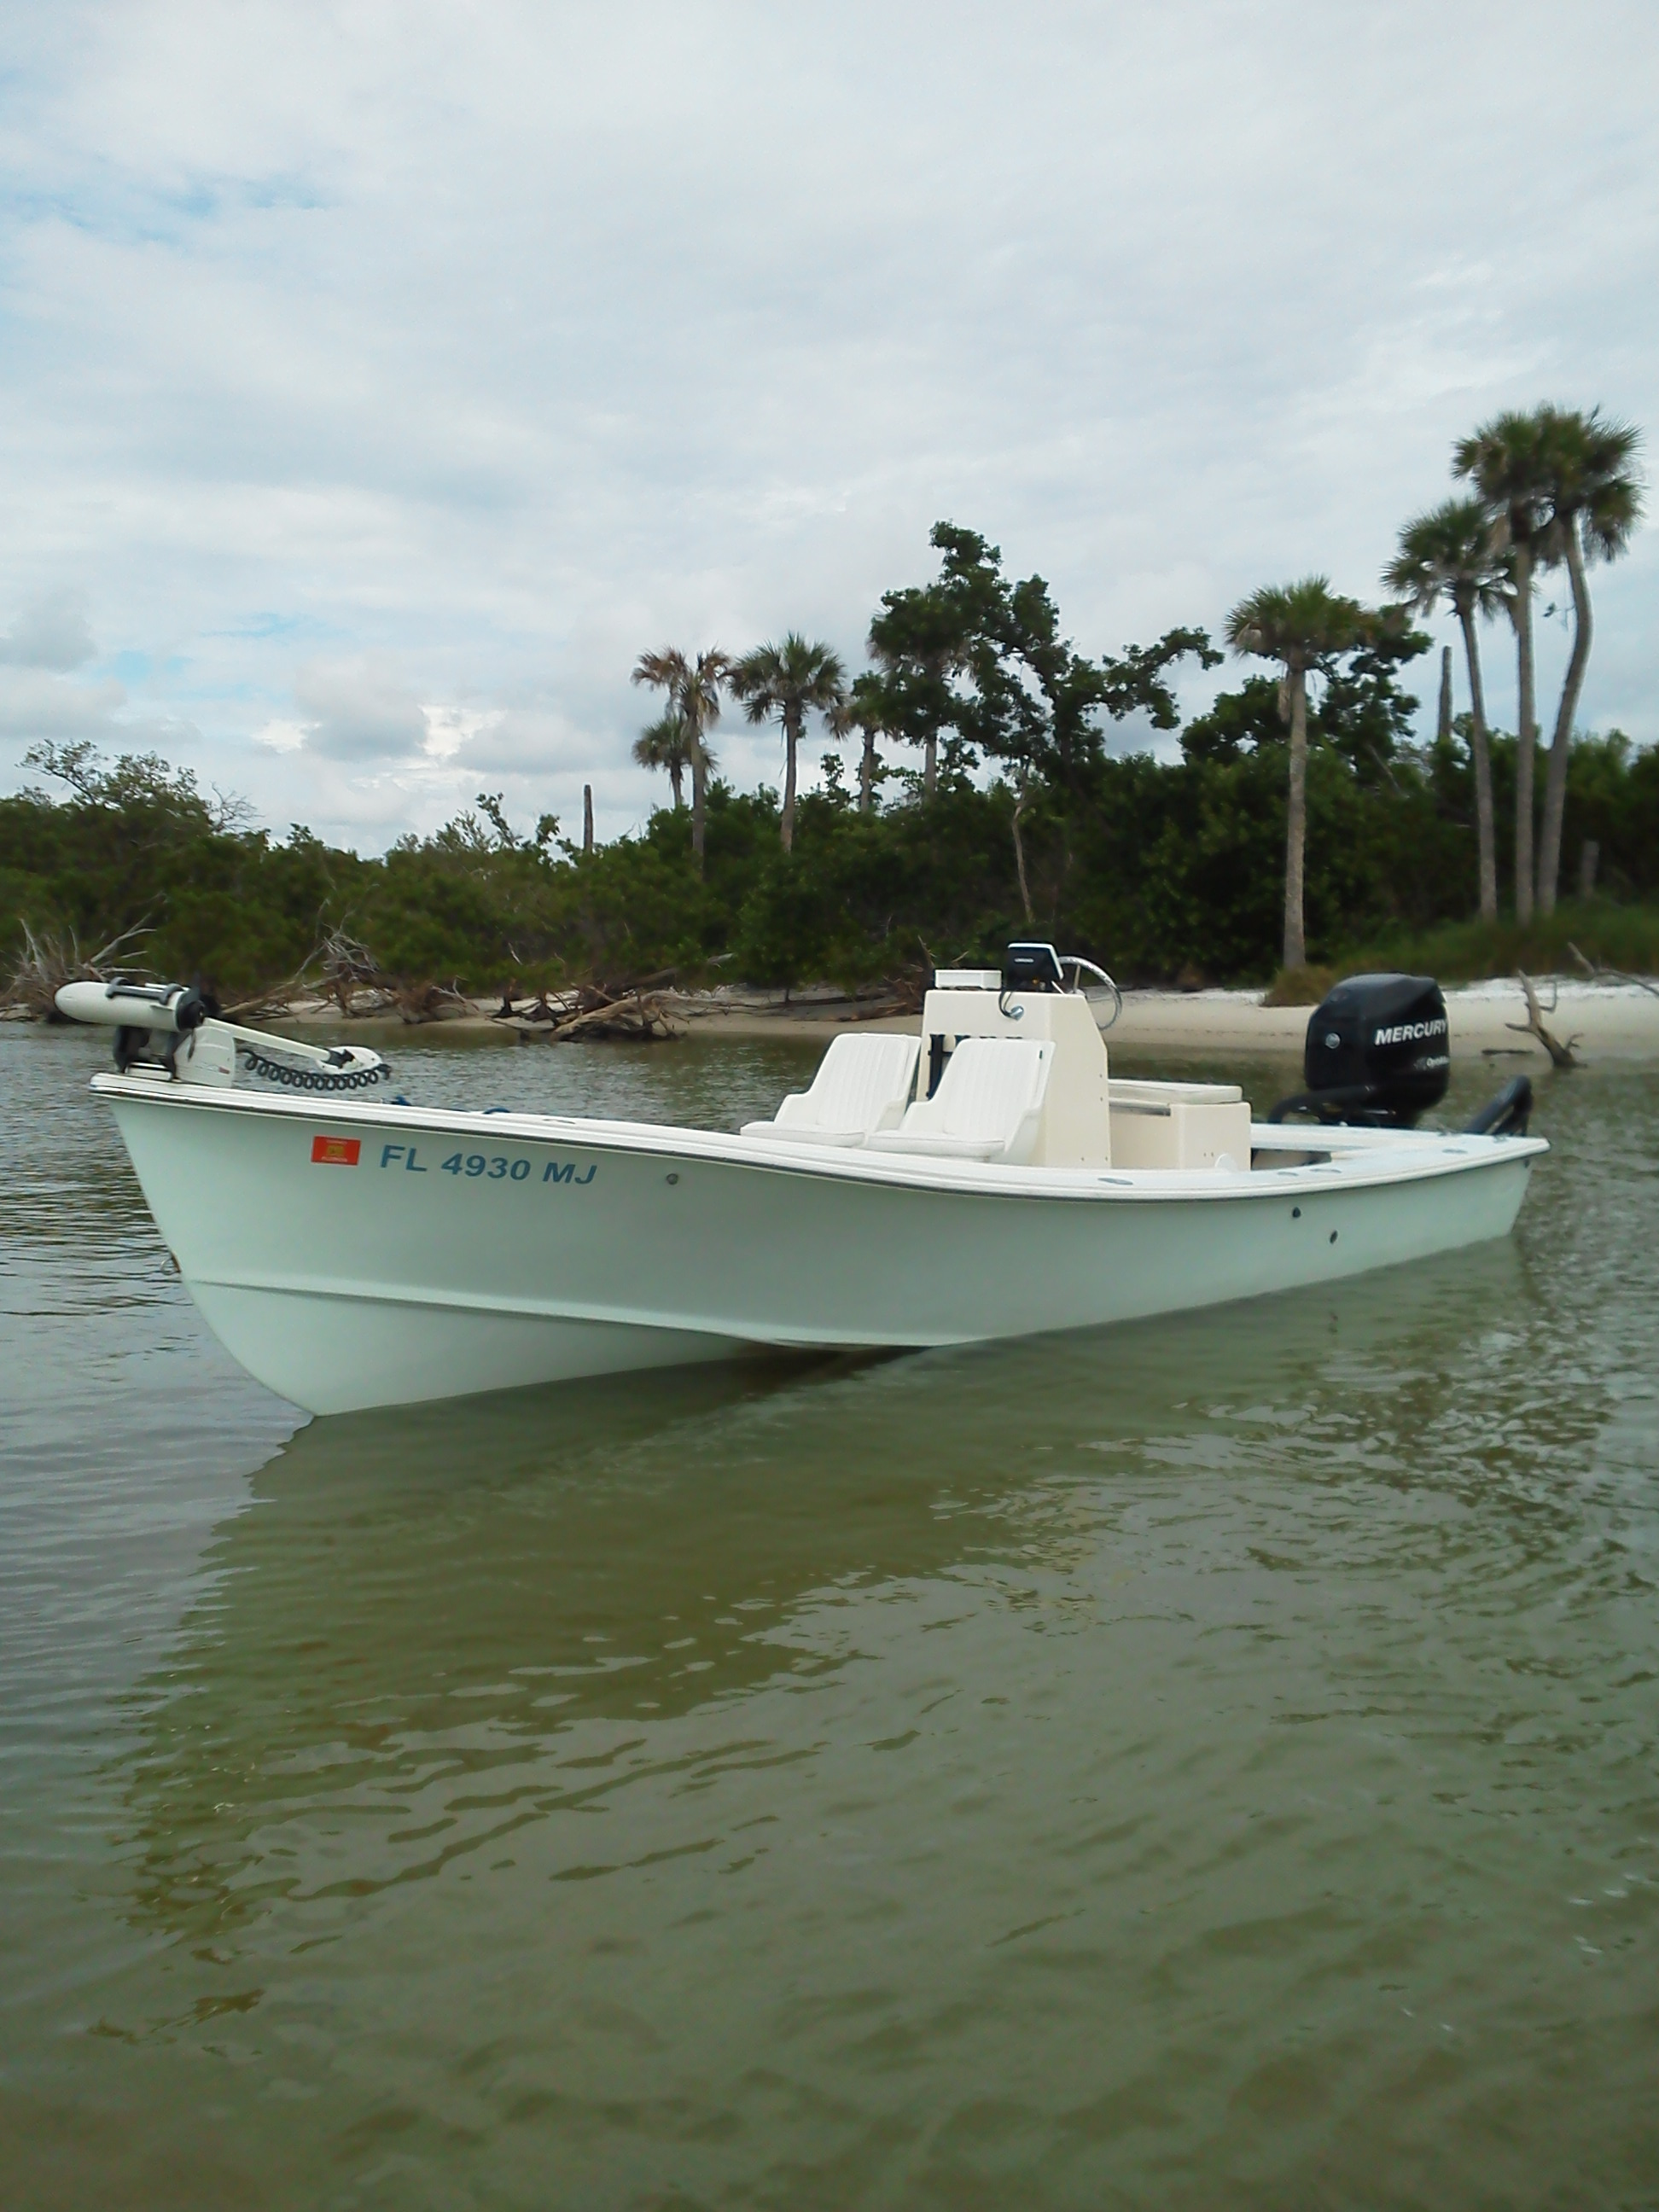 Rates services where we meet fishing charters and for Fishing charters marco island fl